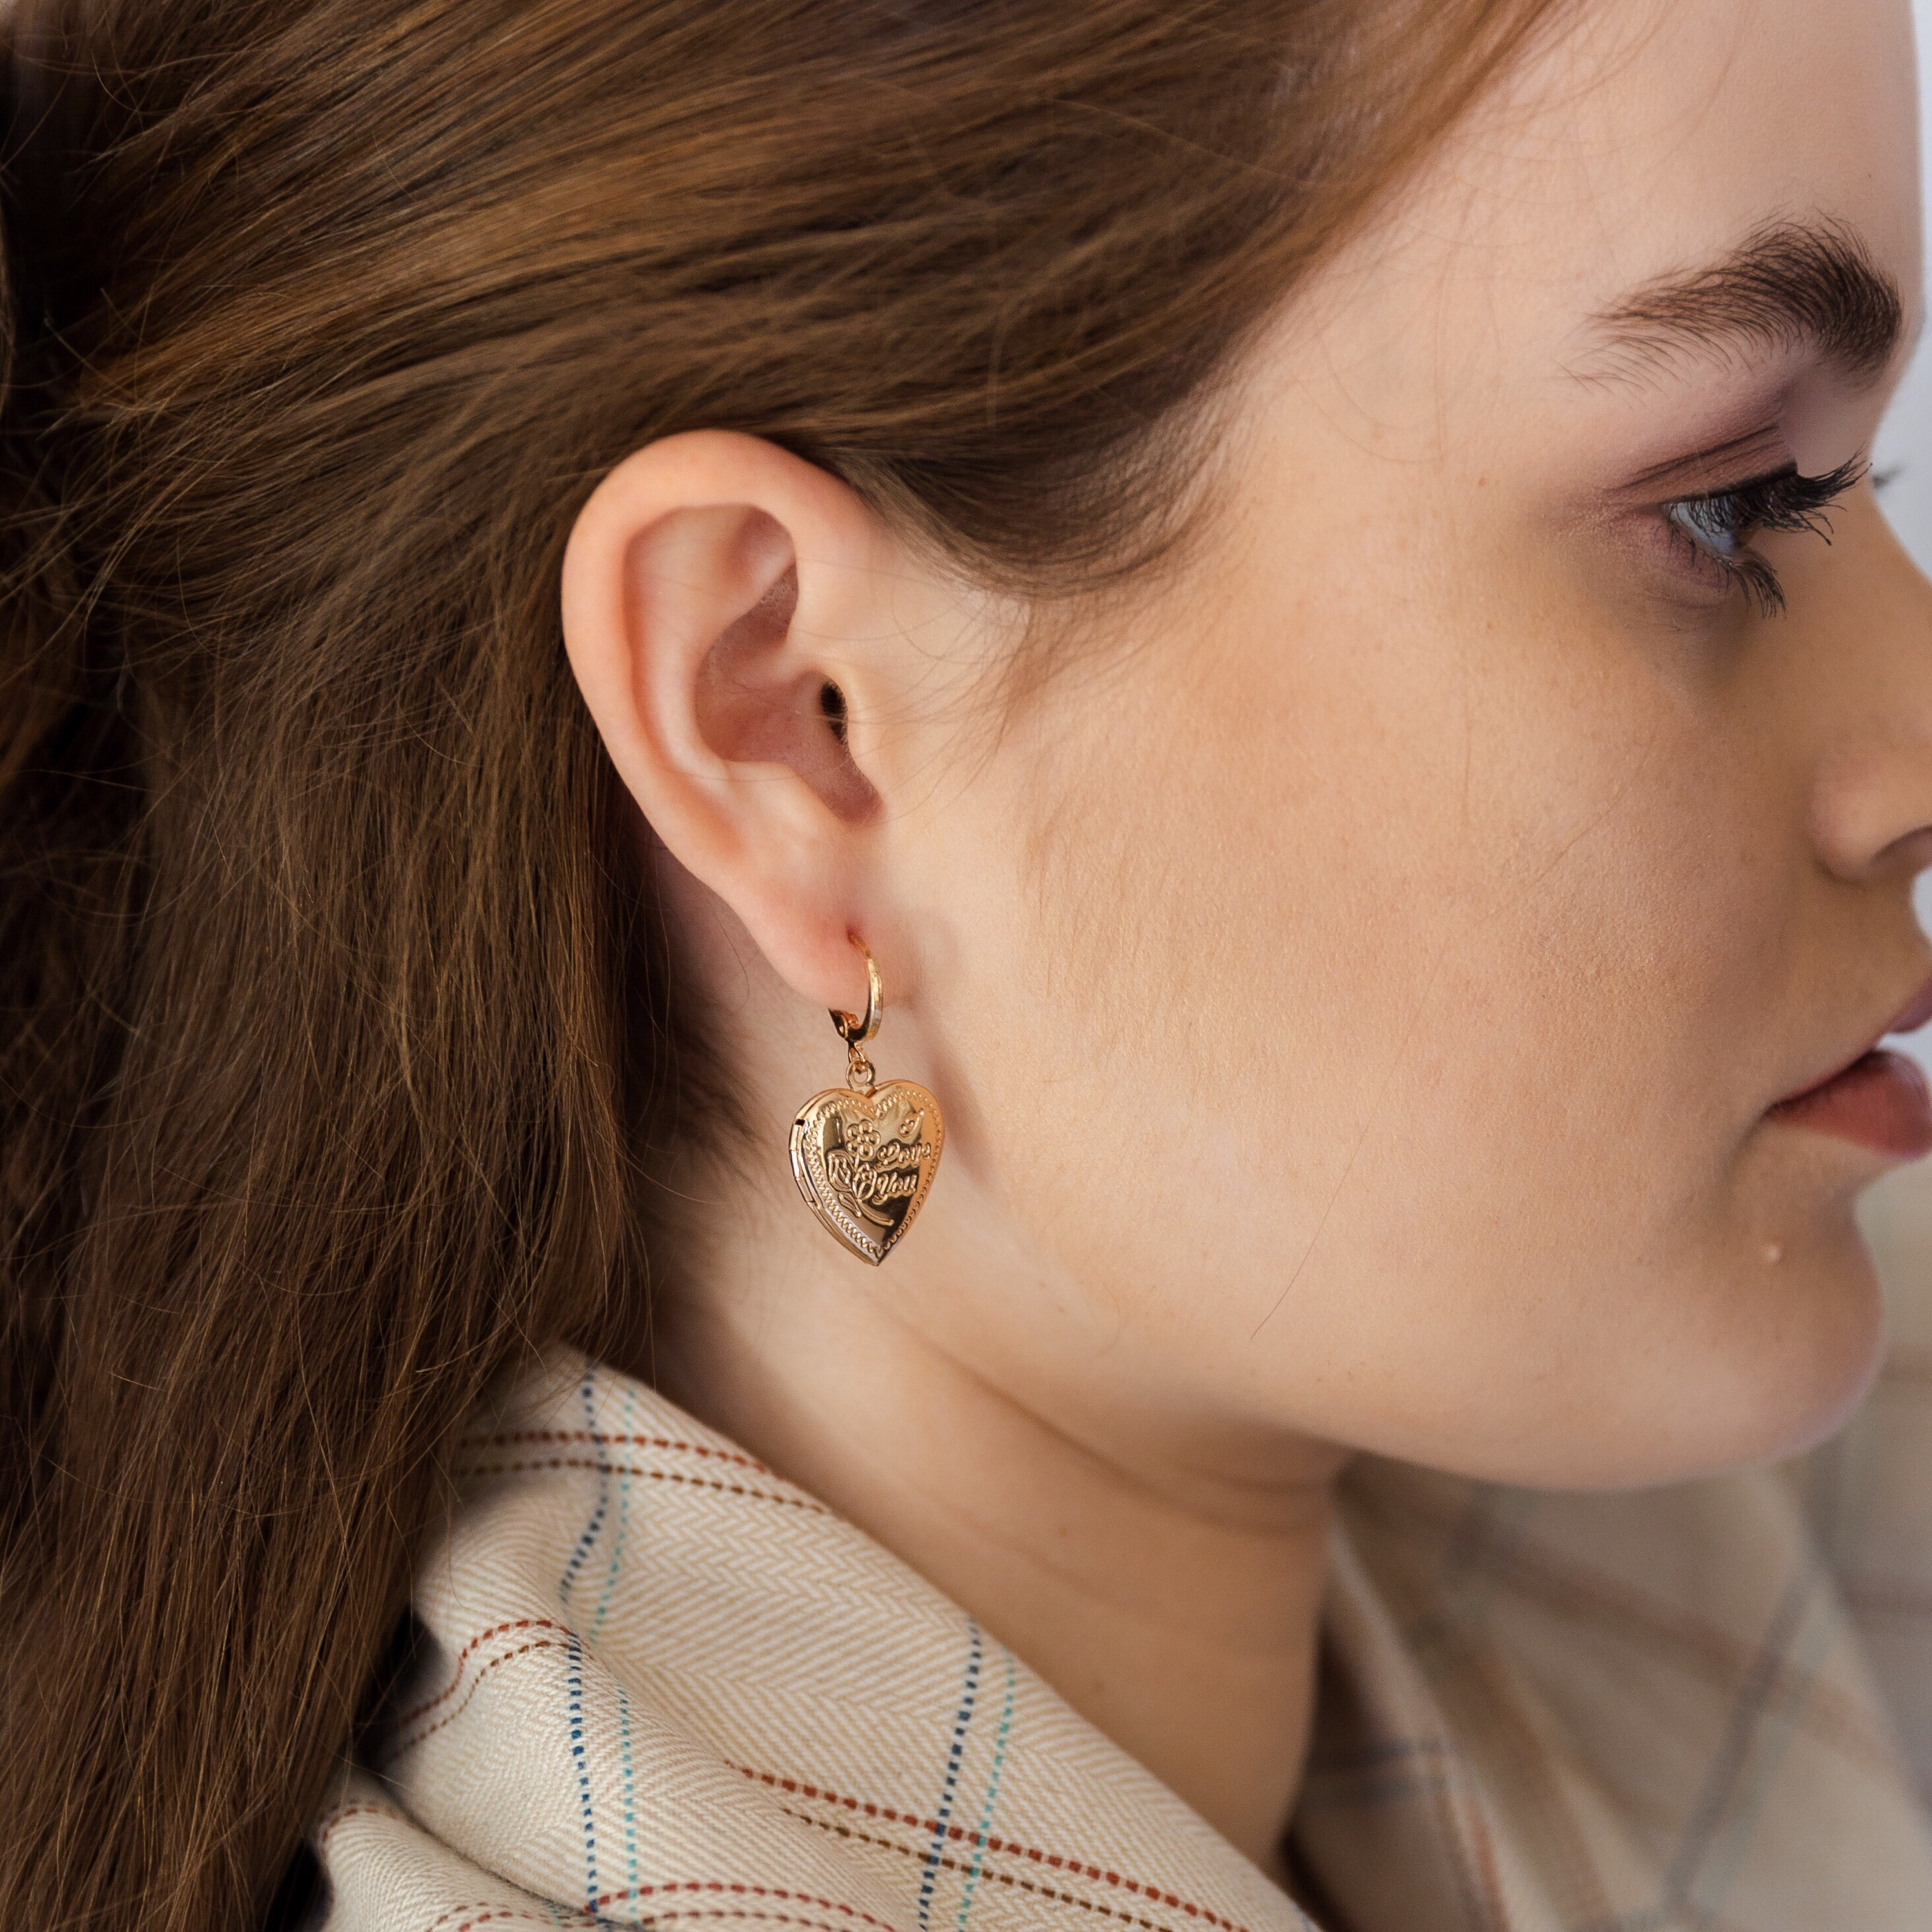 Earrings - Fall in love with these gorgeous pieces